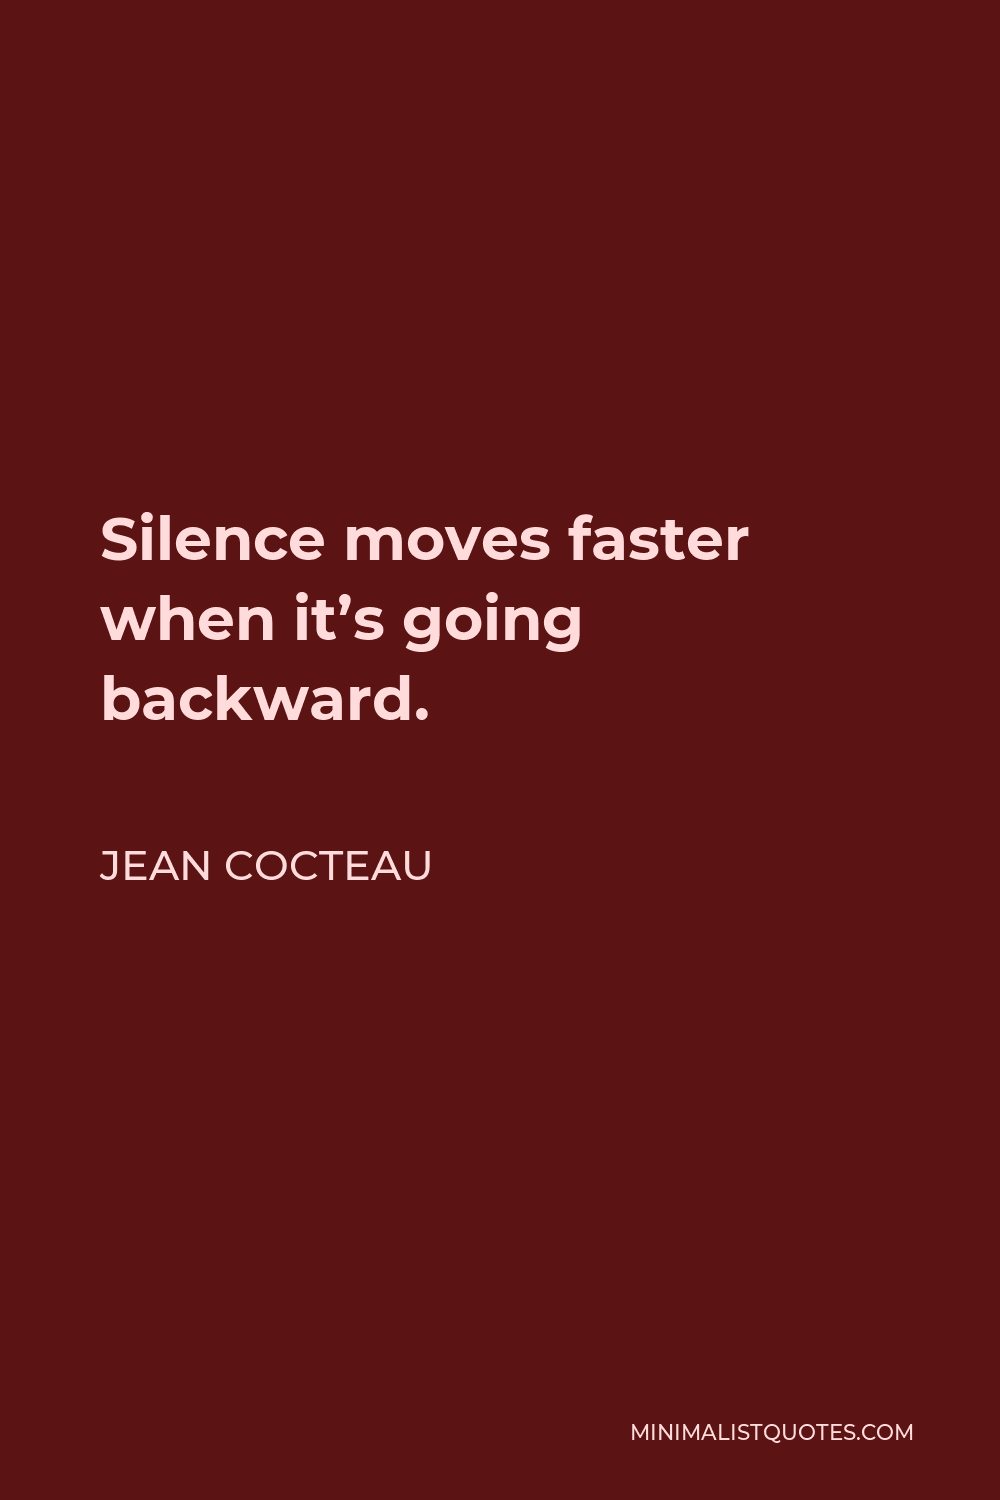 Jean Cocteau Quote - Silence moves faster when it's going backward.